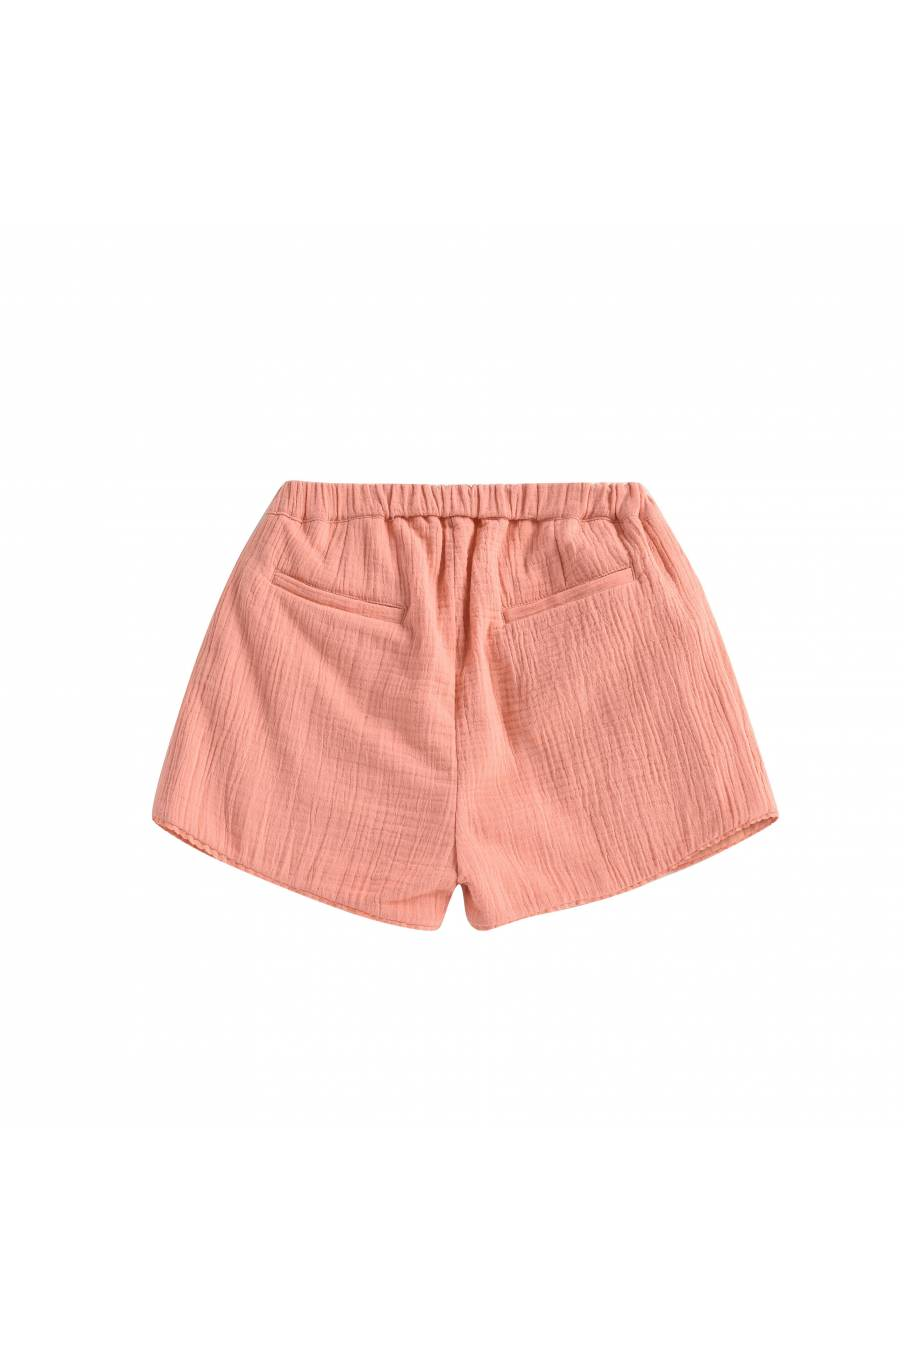 Shorts Ambuda Coral